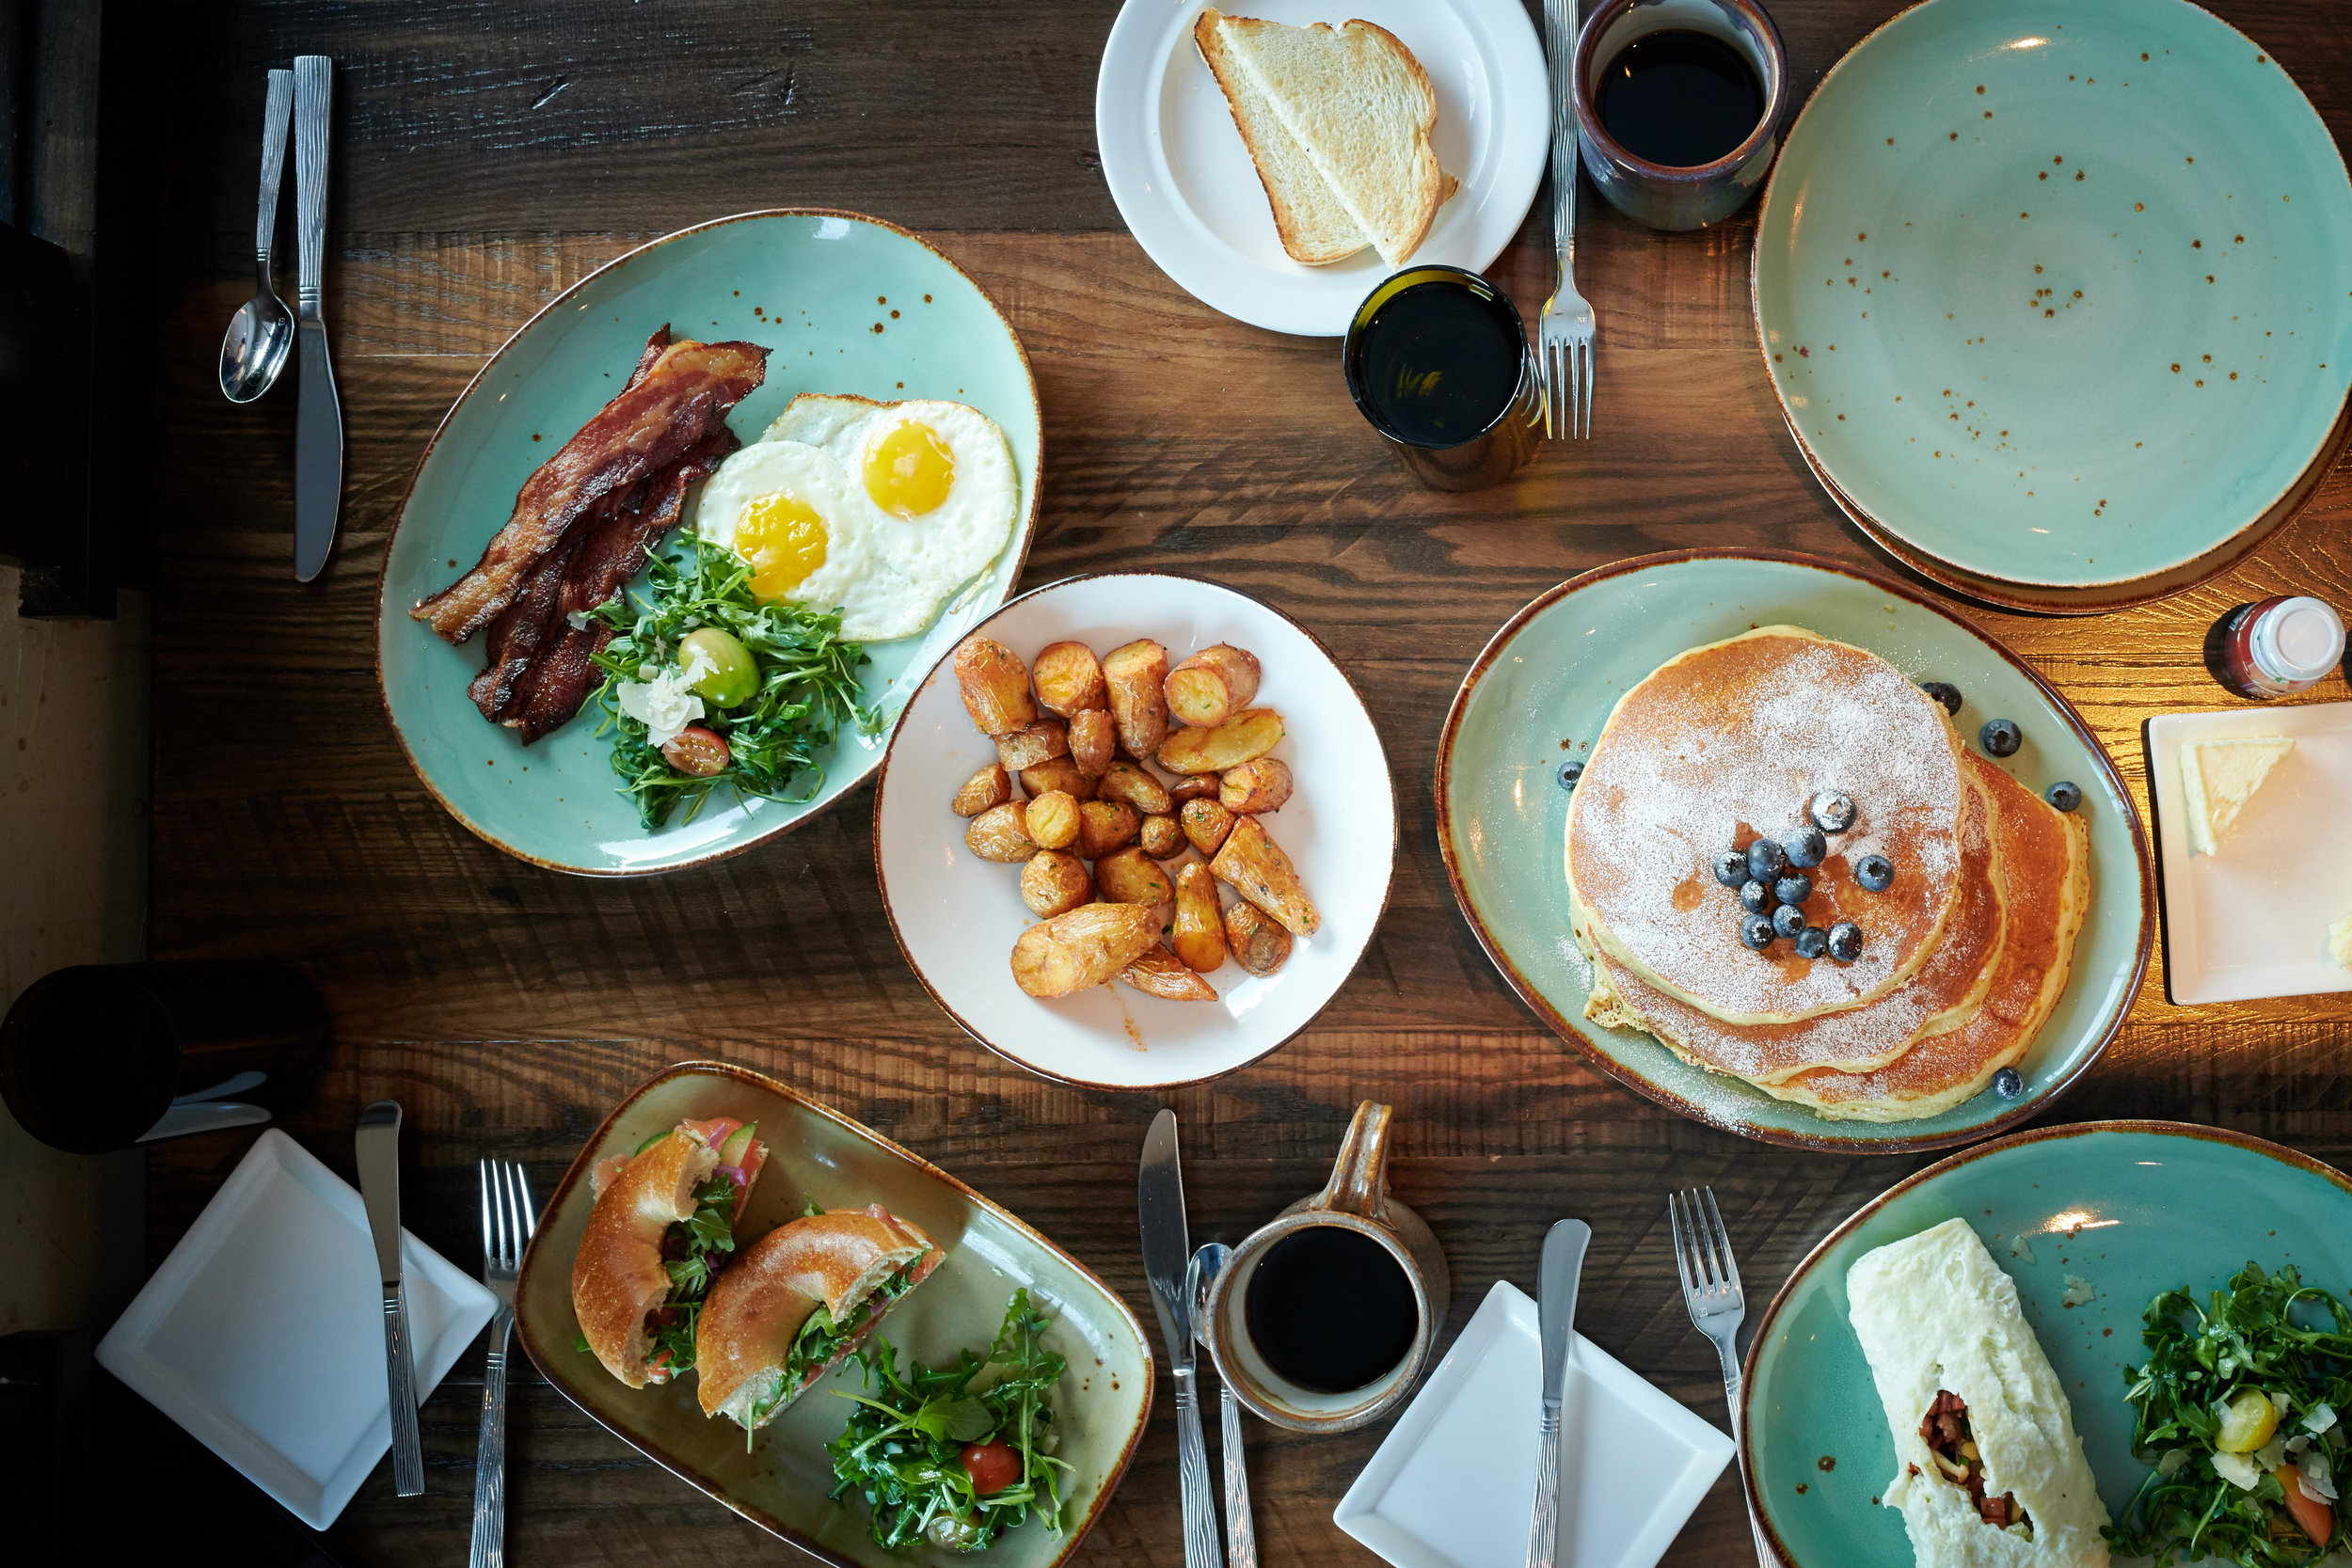 Blueberry Pancakes, Fried Eggs, Fried Potatoes, and Smoked Salmon at the Waldorf Astoria, Park City